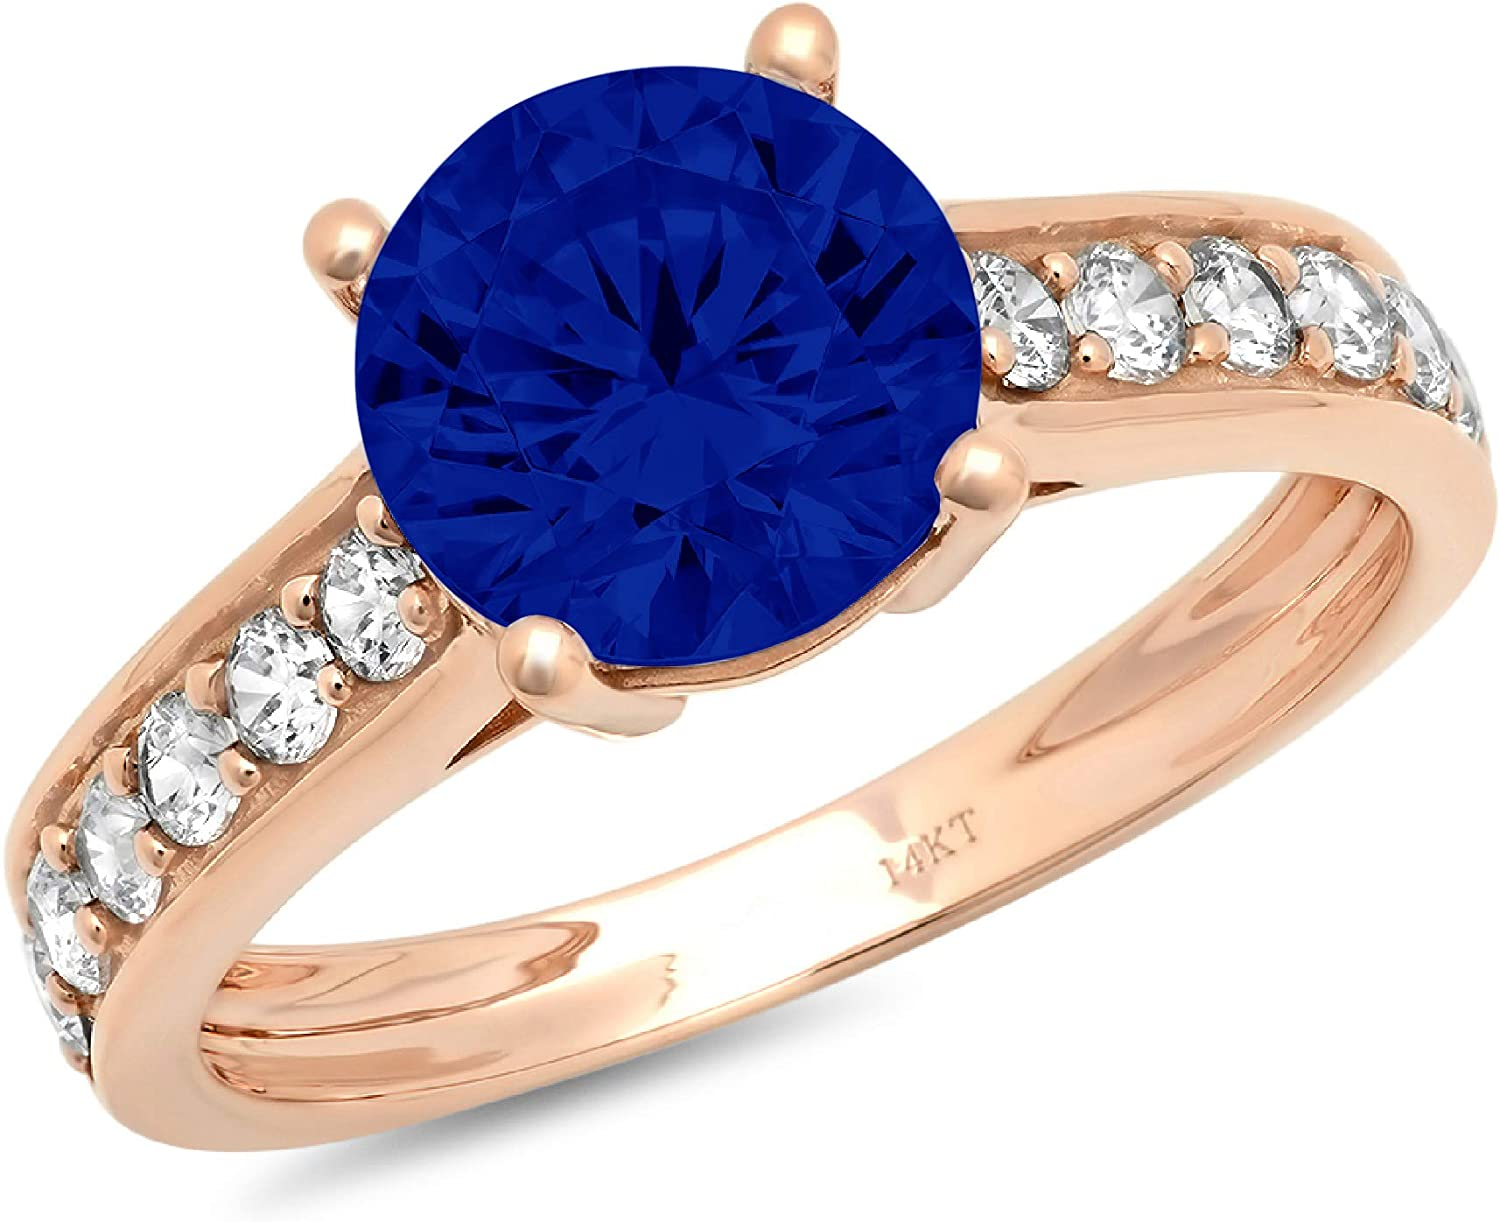 2.19ct Brilliant Round Cut Solitaire with accent Flawless Ideal Genuine Cubic Zirconia Blue Sapphire Engagement Promise Statement Anniversary Bridal Wedding Accent Designer Ring 14k Rose Gold